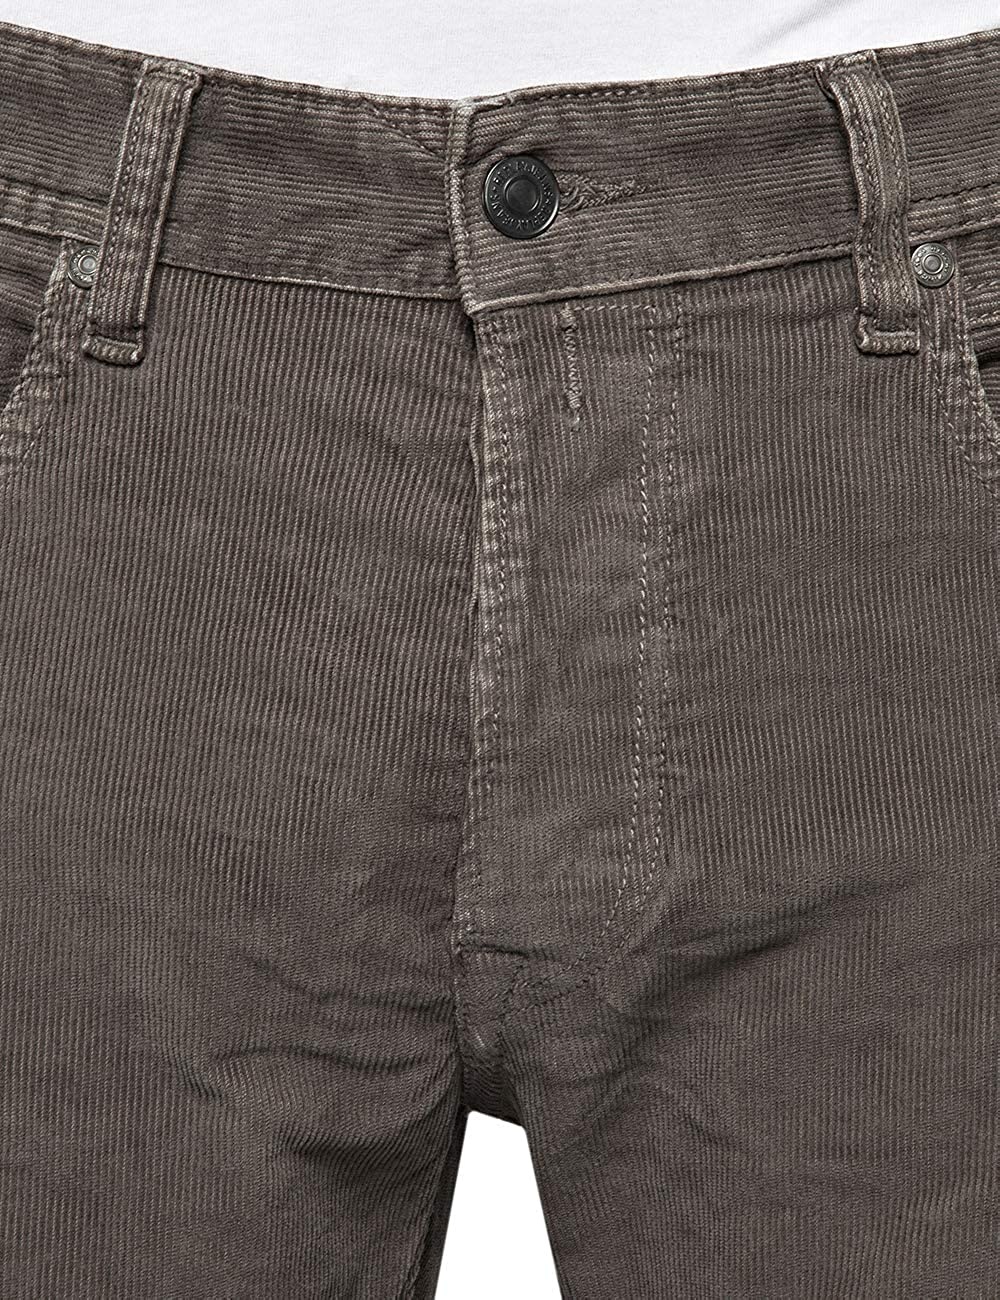 Replay Men's Grover Straight Jeans (Dark Mud 120)